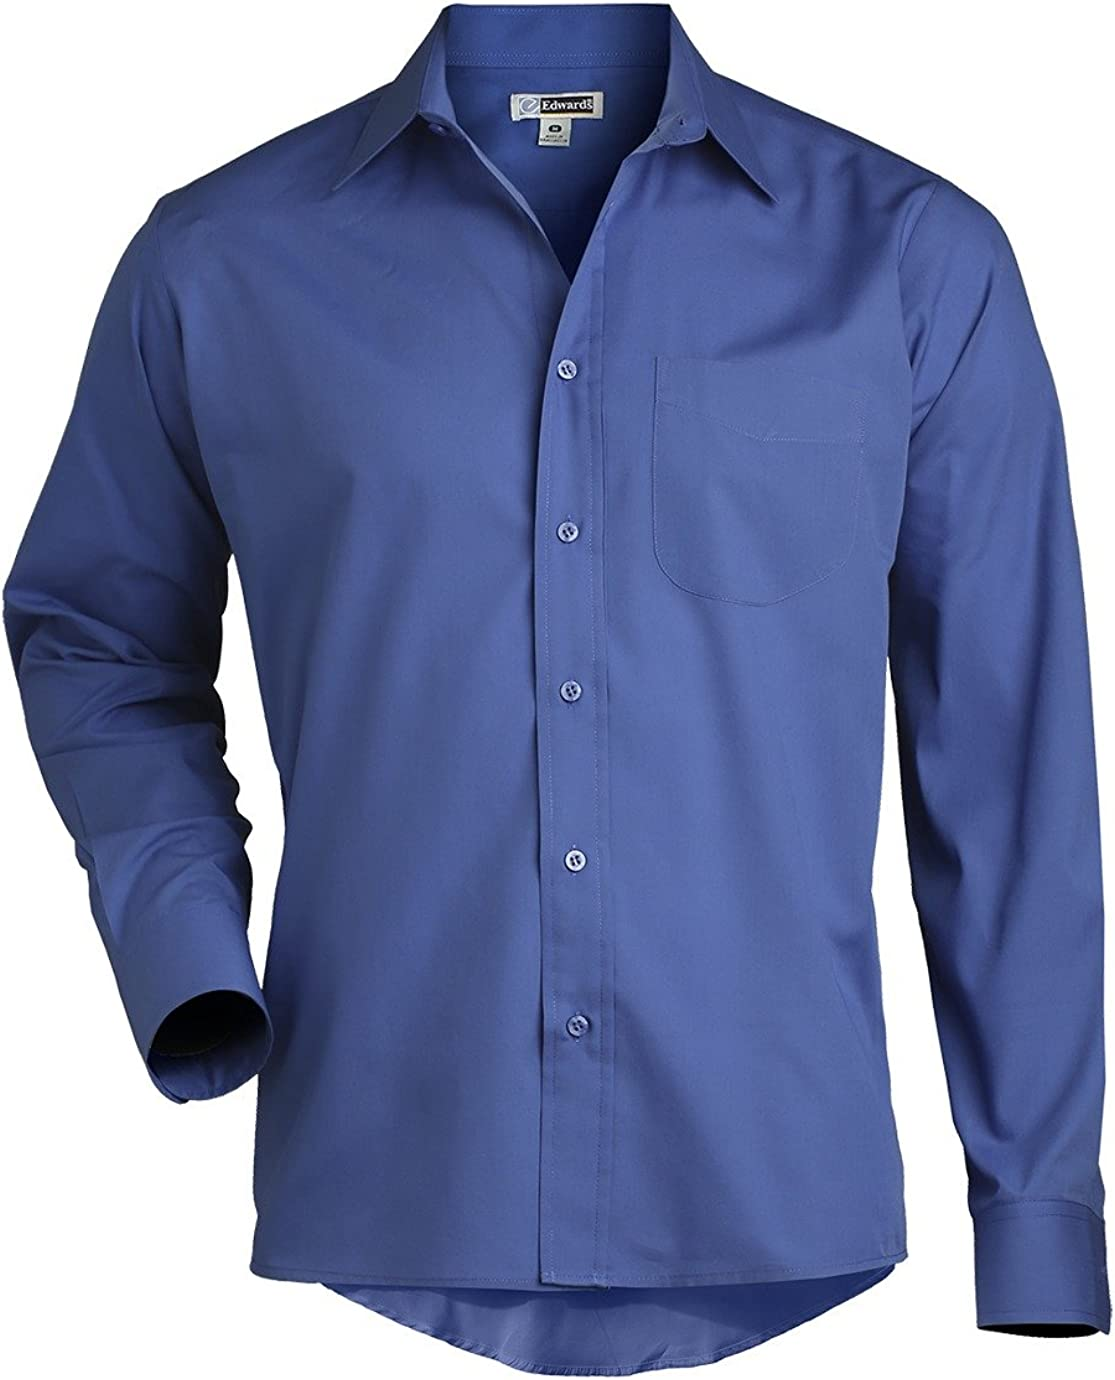 Mens Long Sleeve Broadcloth Shirt 1363 by Edwards for Compo Clothing